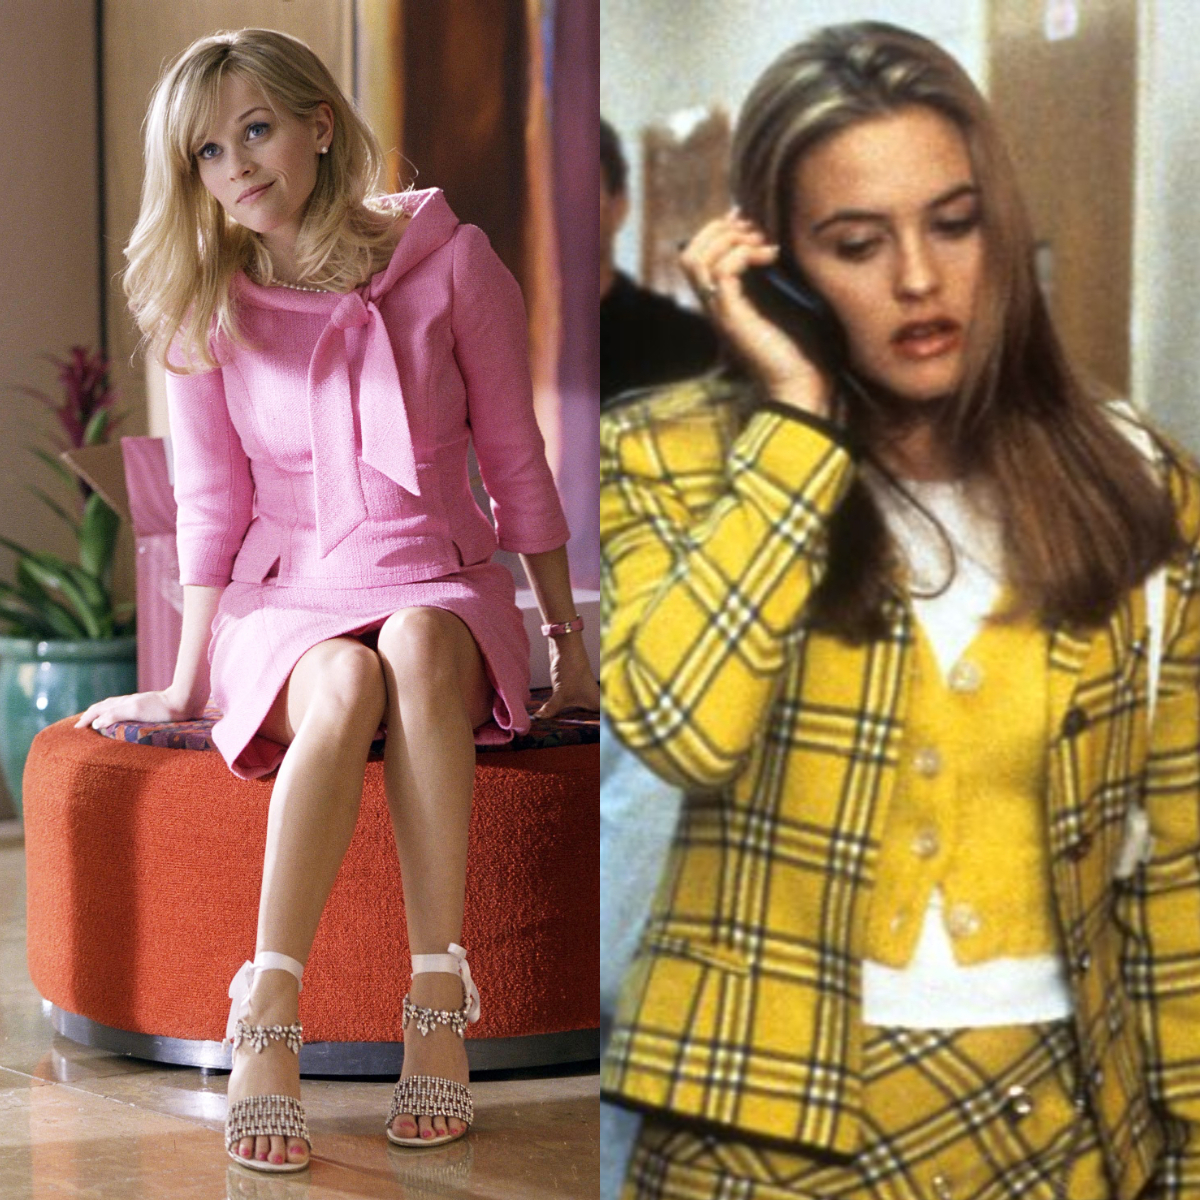 Top 5 movies which have characters who wore some iconic outfits